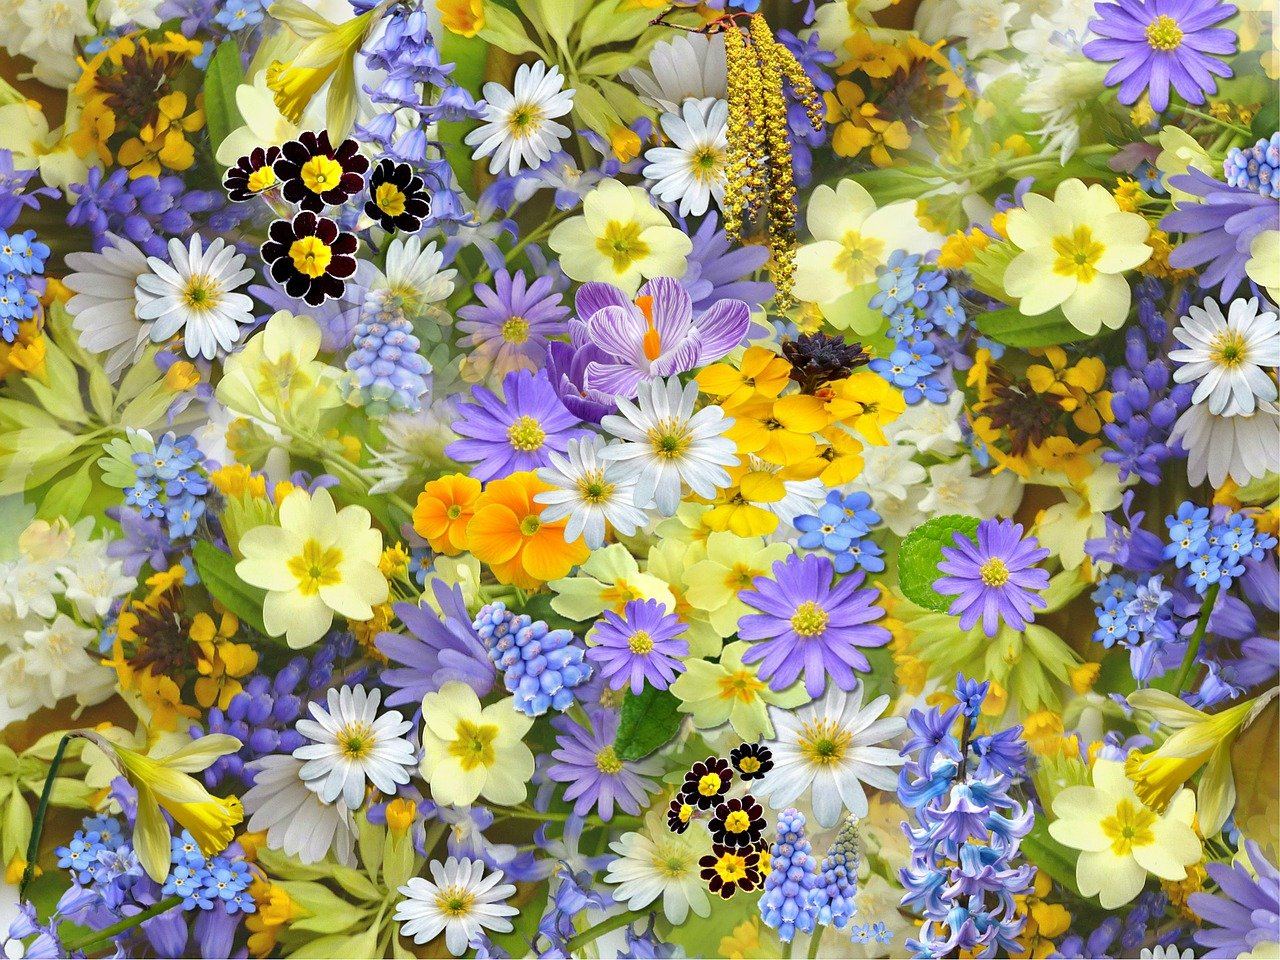 spring flowers, flowers, collage